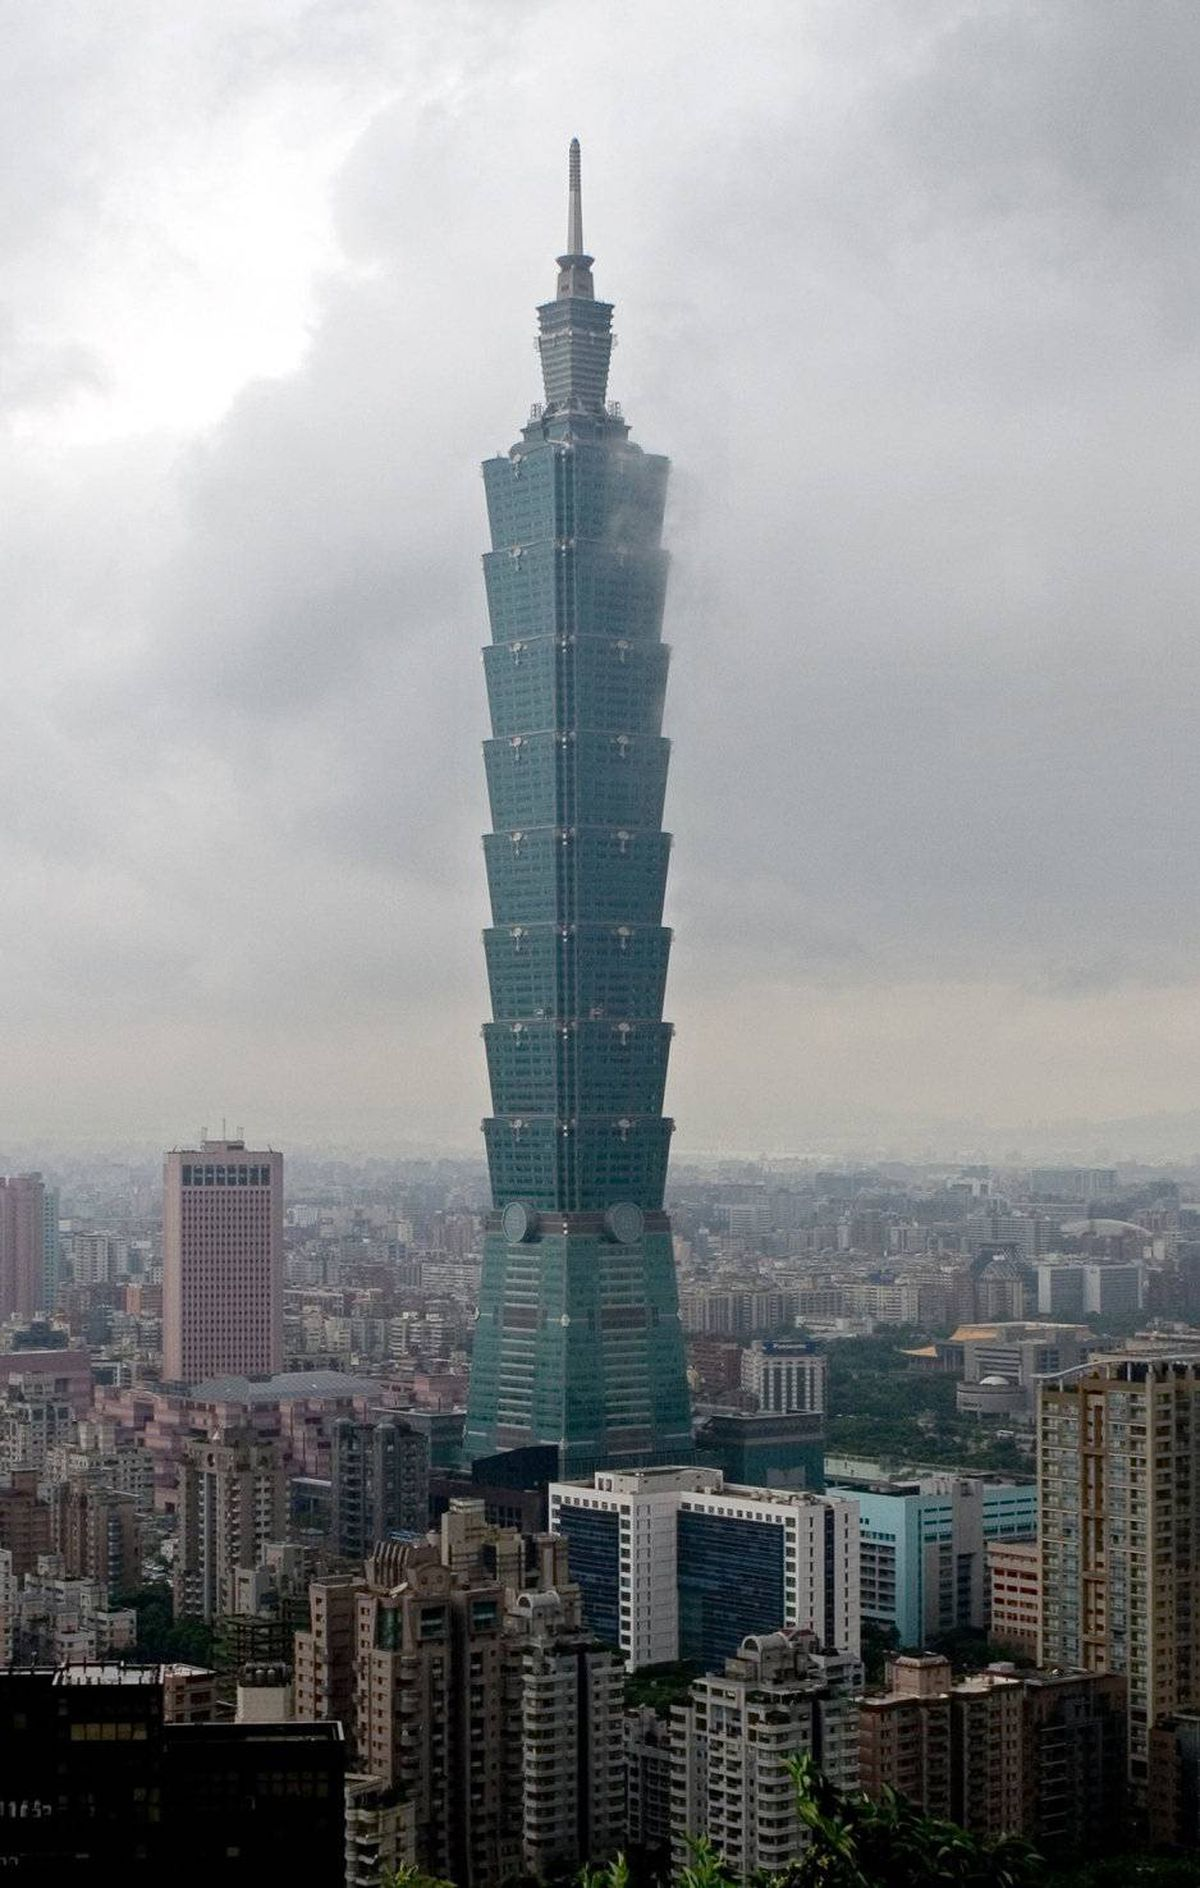 Clouds of rain brought by typhoon Saomai linger over the city Taipei 101, one of the world's tallest buildings on Aug. 10, 2006, in Taipei, Taiwan.